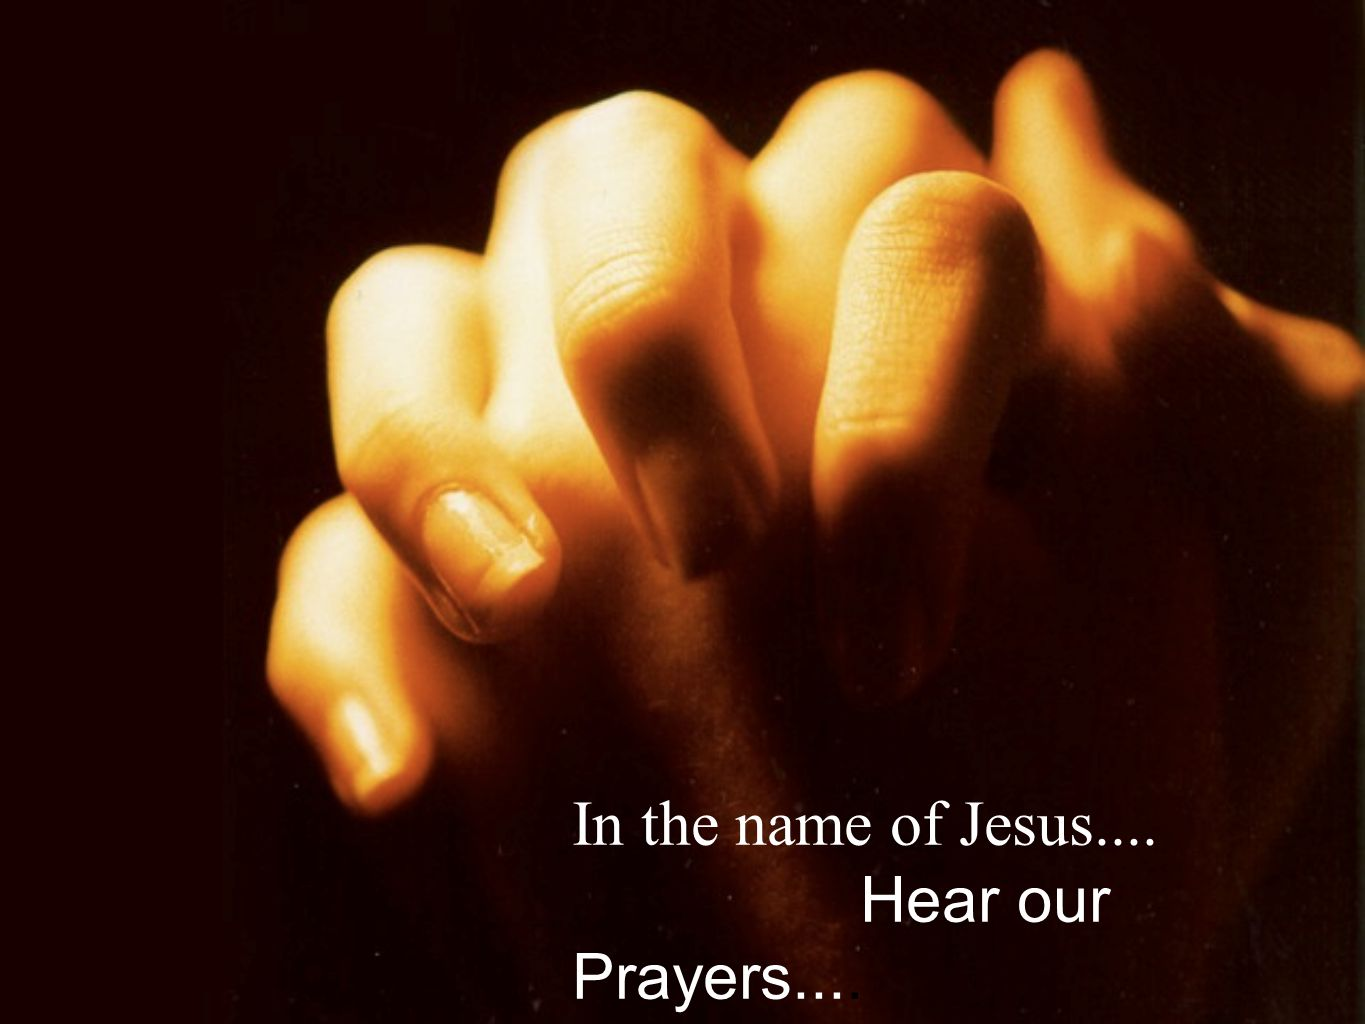 In the name of Jesus.... Hear our Prayers....